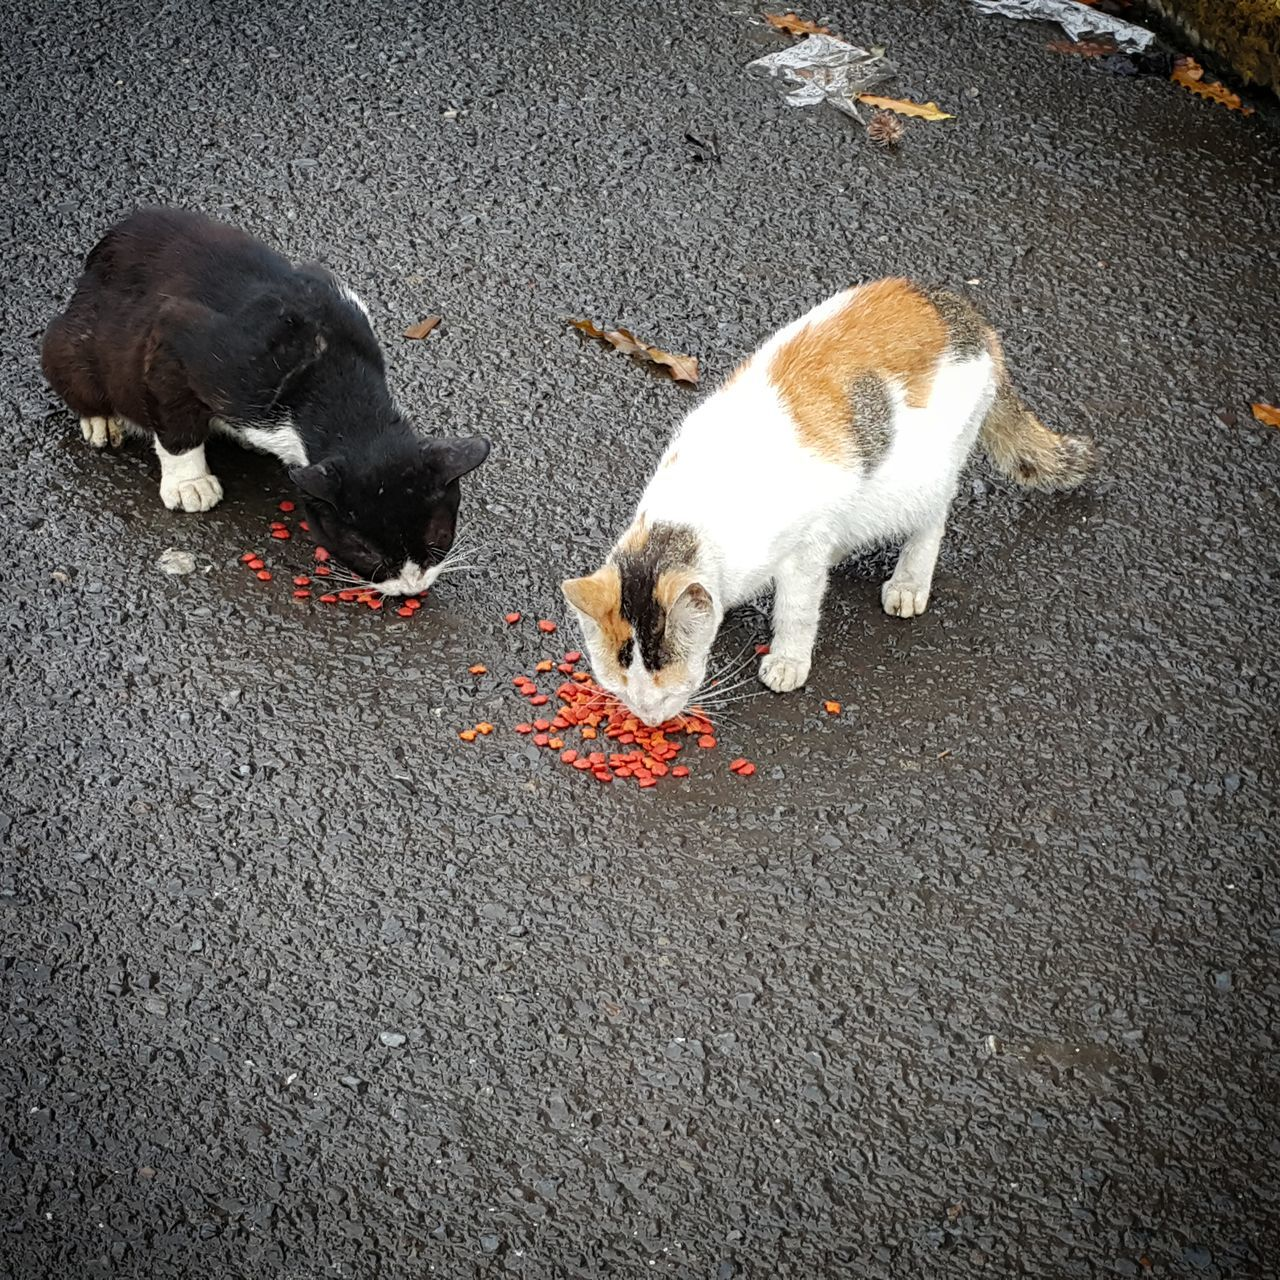 Animal Themes Outdoors No People Street Cats Feeding Cats Day Cats Of EyeEm Hungry Cat